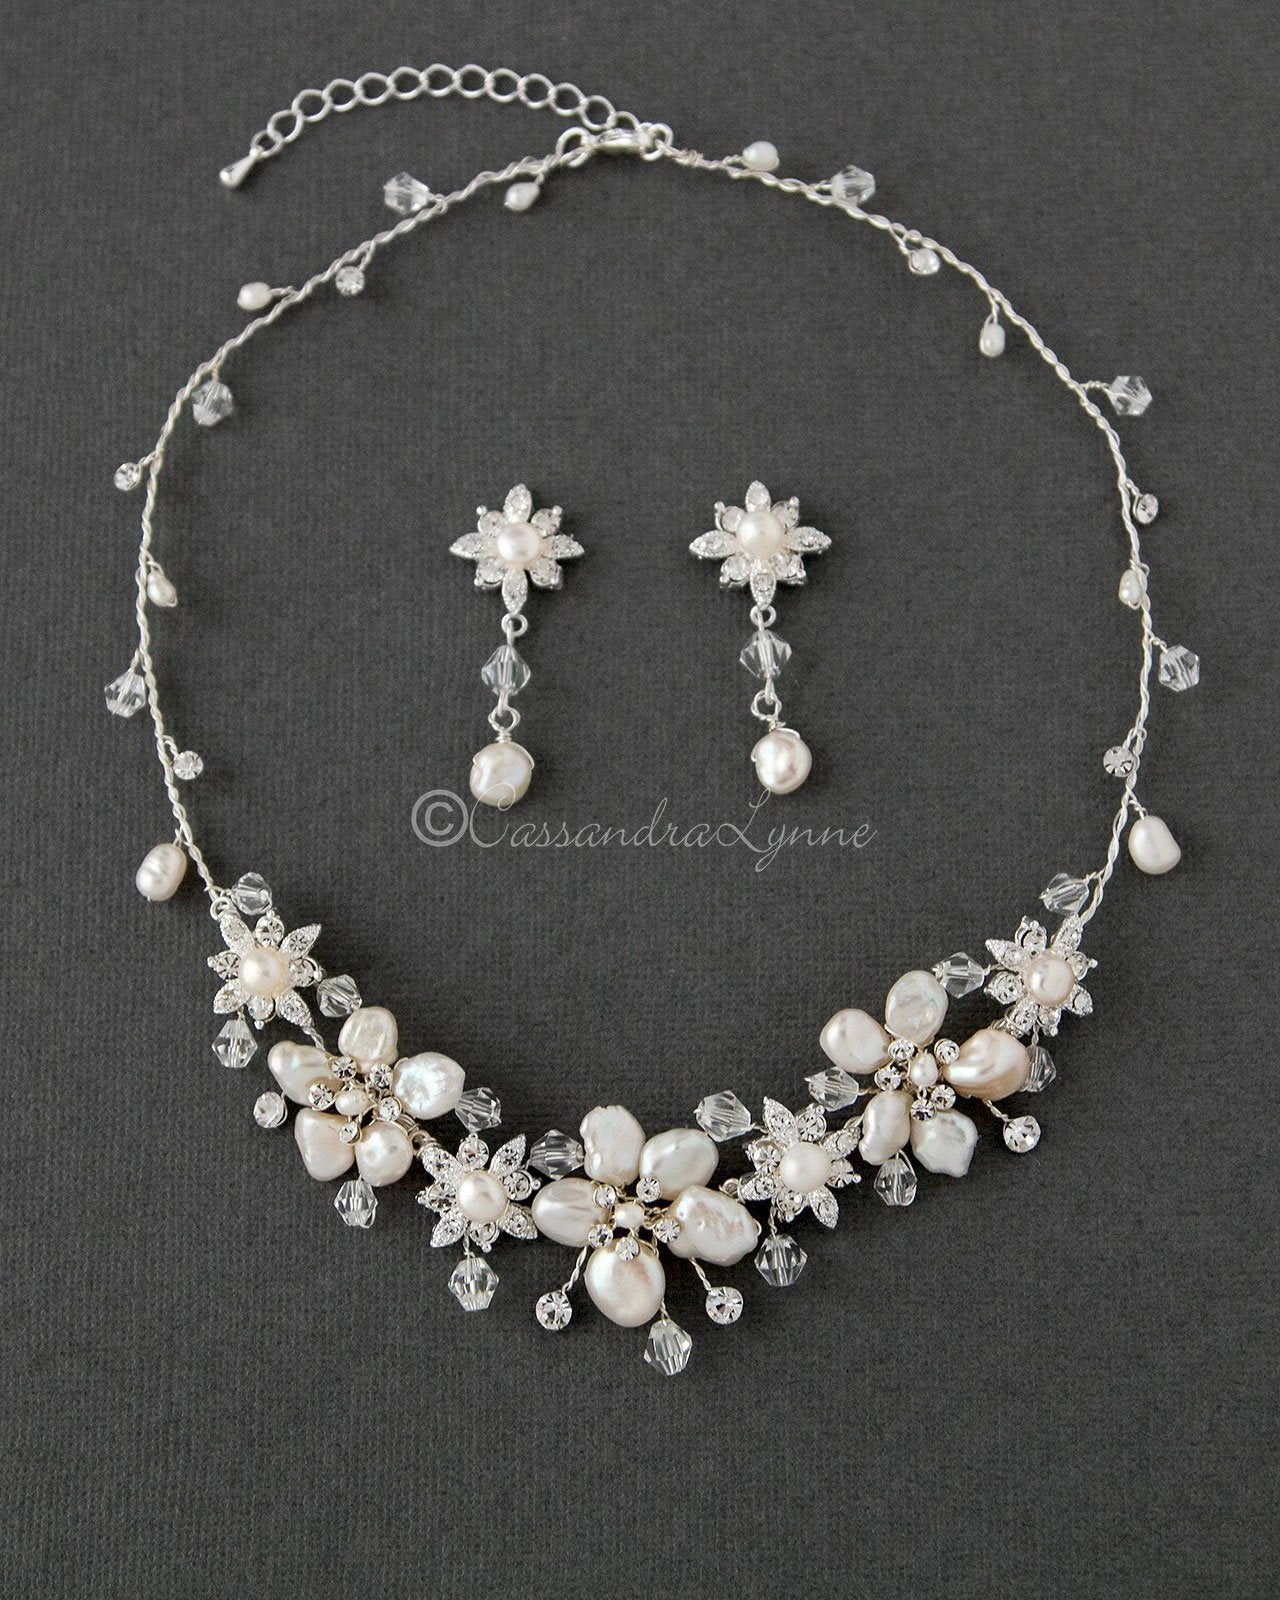 Bridal Necklace of Keshi Pearls and Crystals